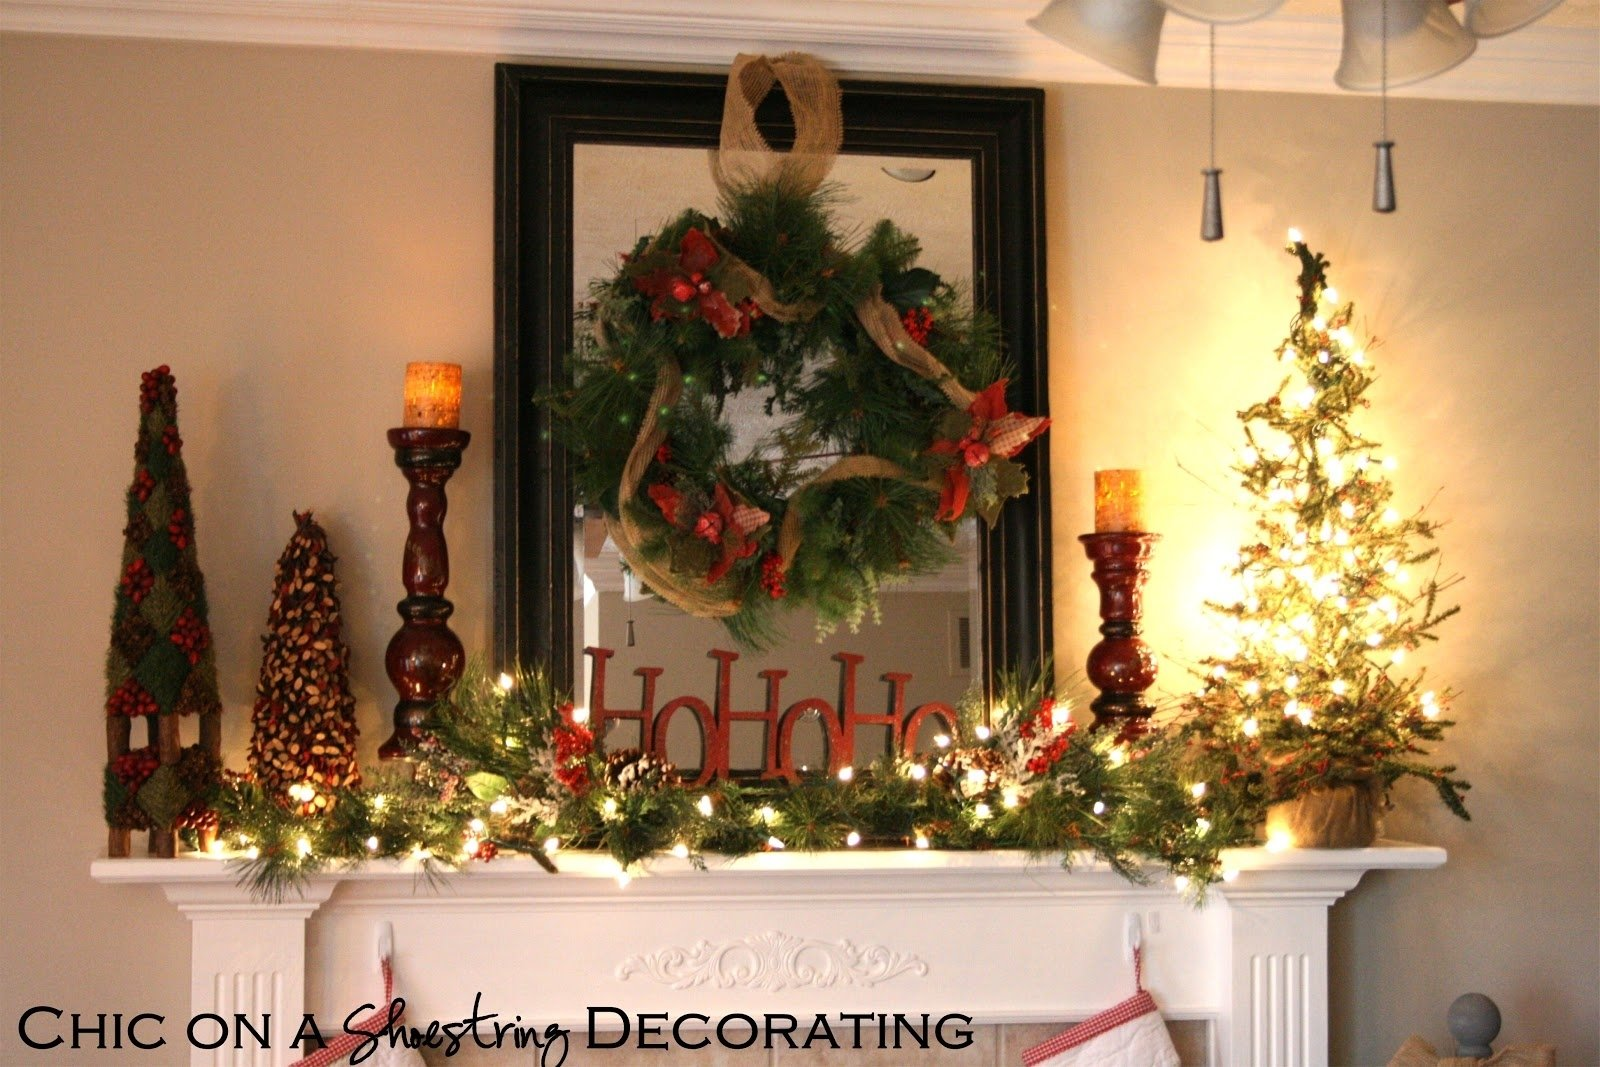 10 Wonderful Christmas Decorating Ideas For Mantels chic on a shoestring decorating rustic christmas mantel 2020